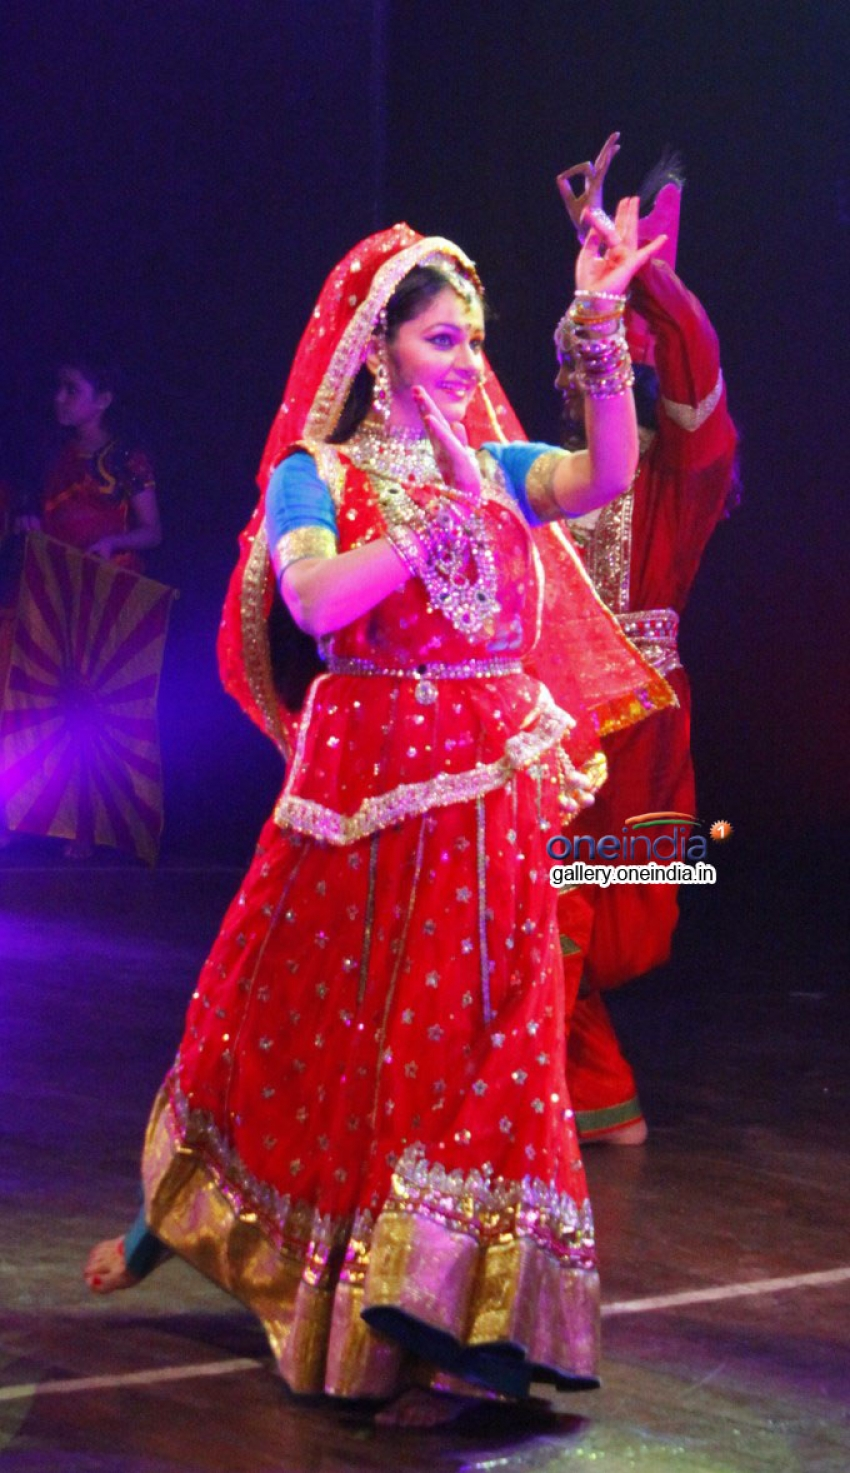 Gracy Singh performs for the cause of global warming Photos